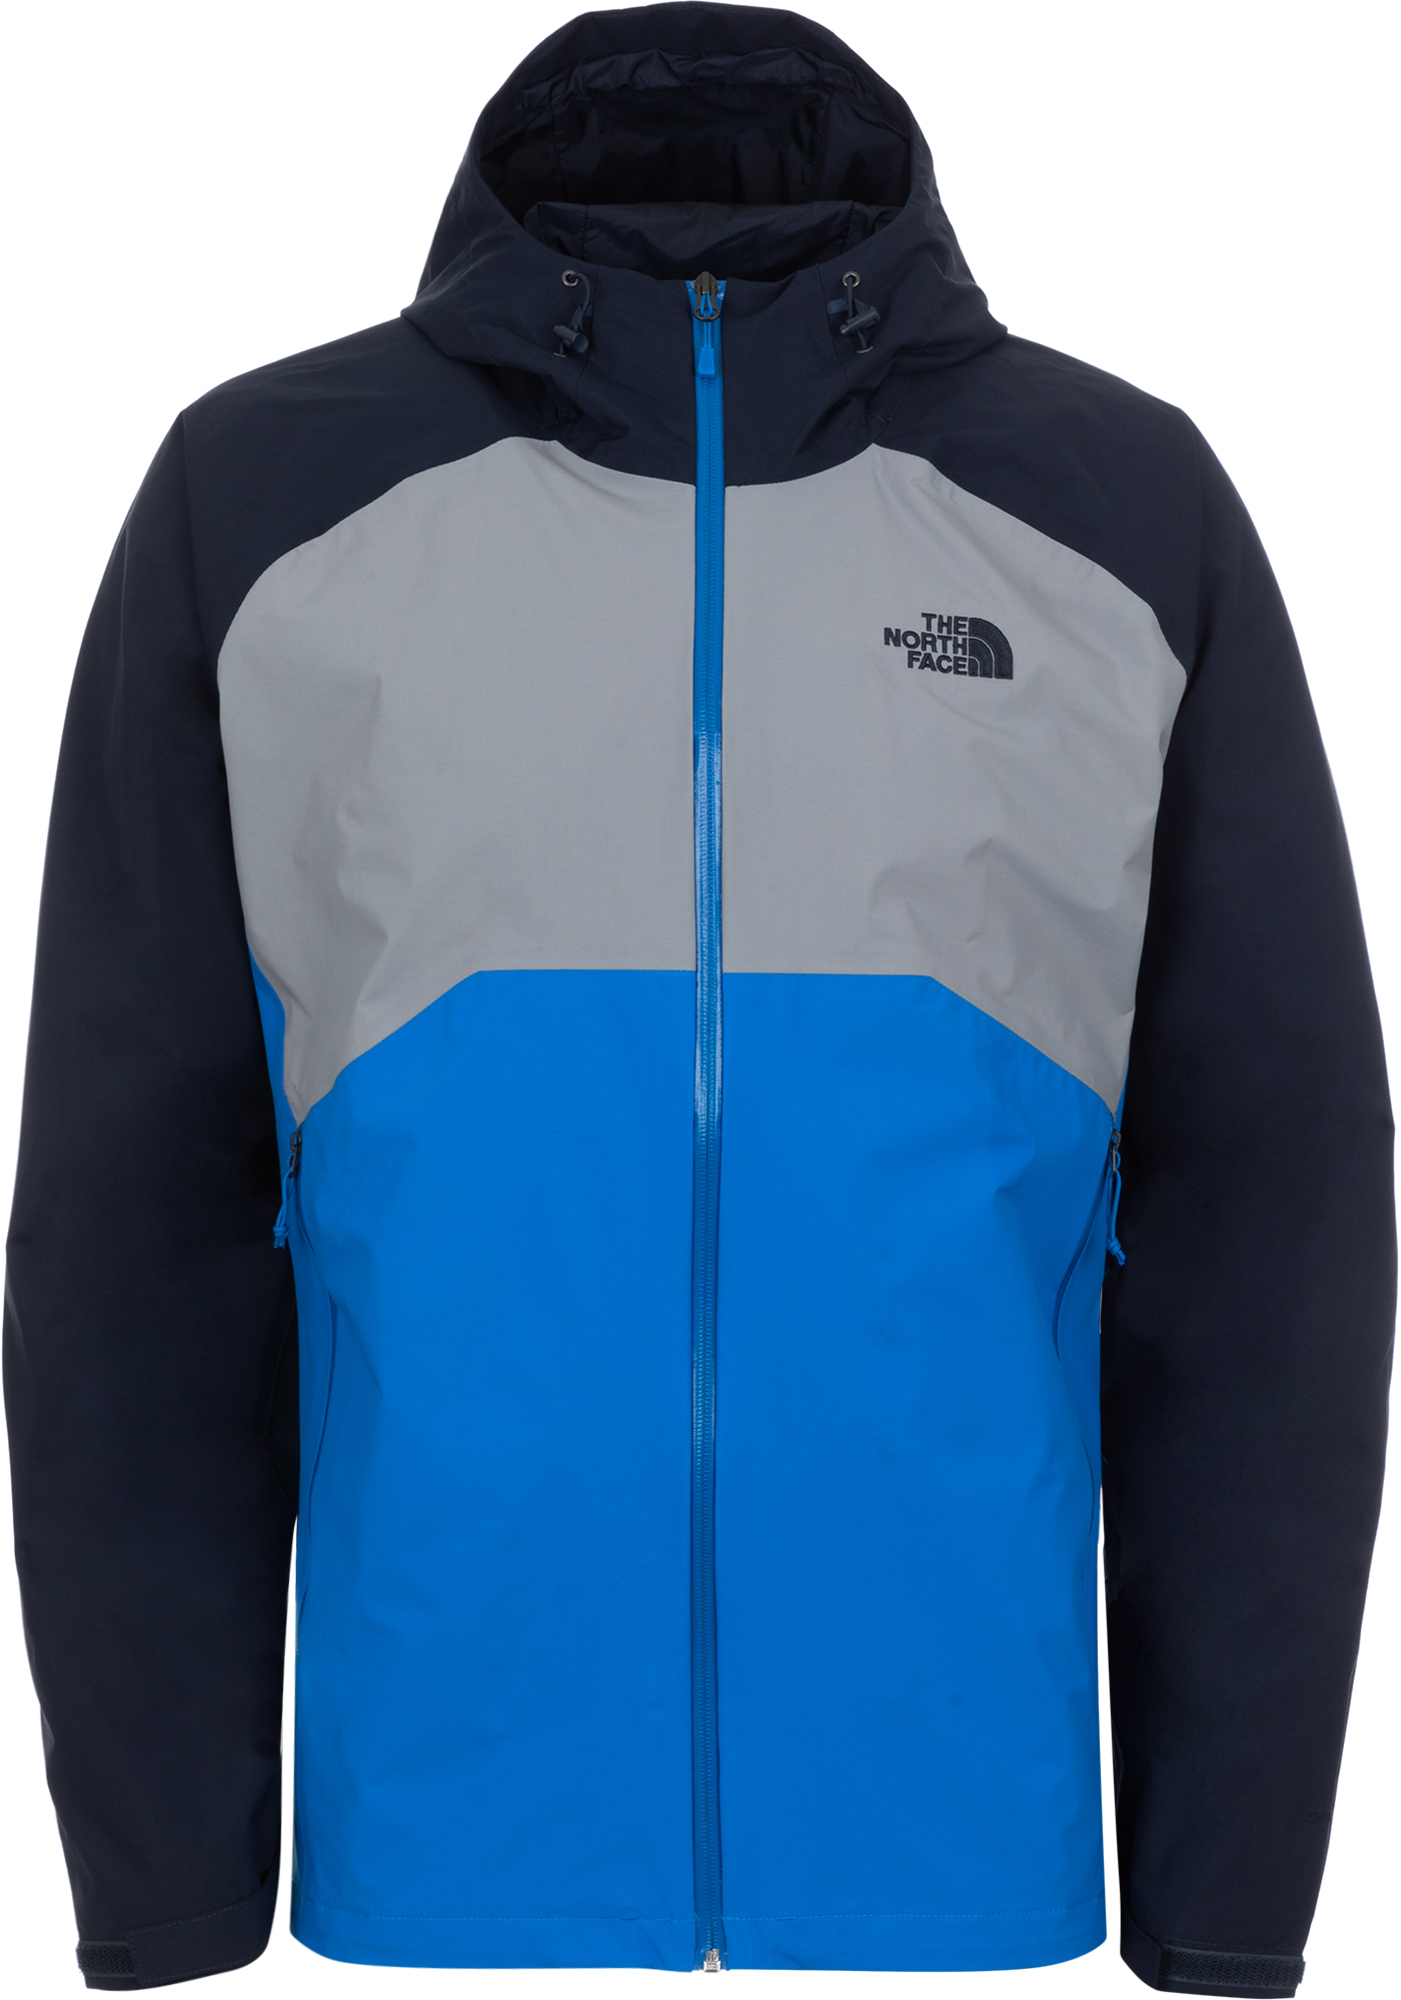 The North Face Ветровка мужская The North Face Stratos, размер 52 цена и фото